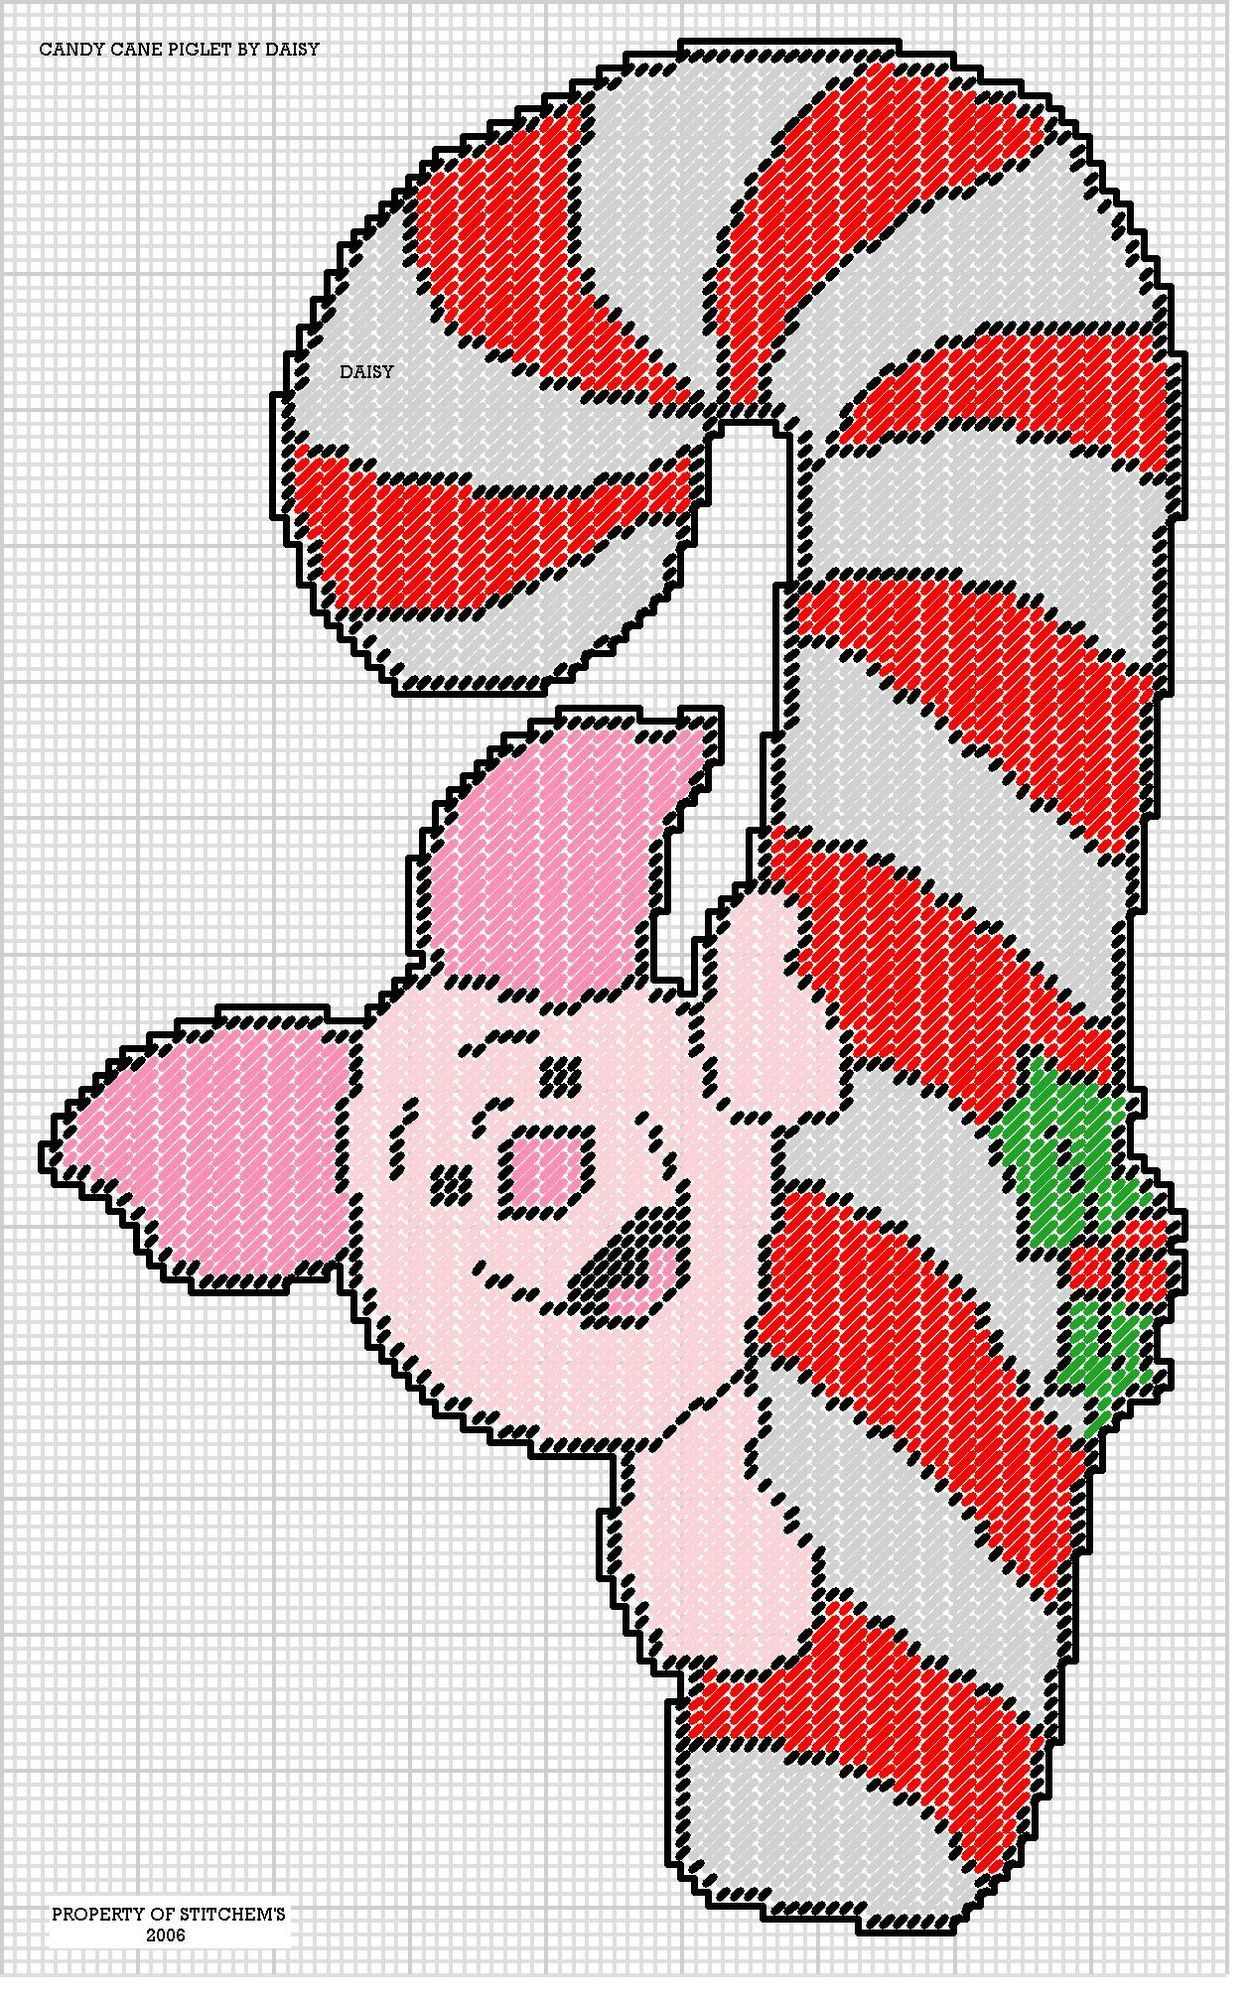 Candy Cane Piglet By Daisy Stitchems Wall Hanging 2 2